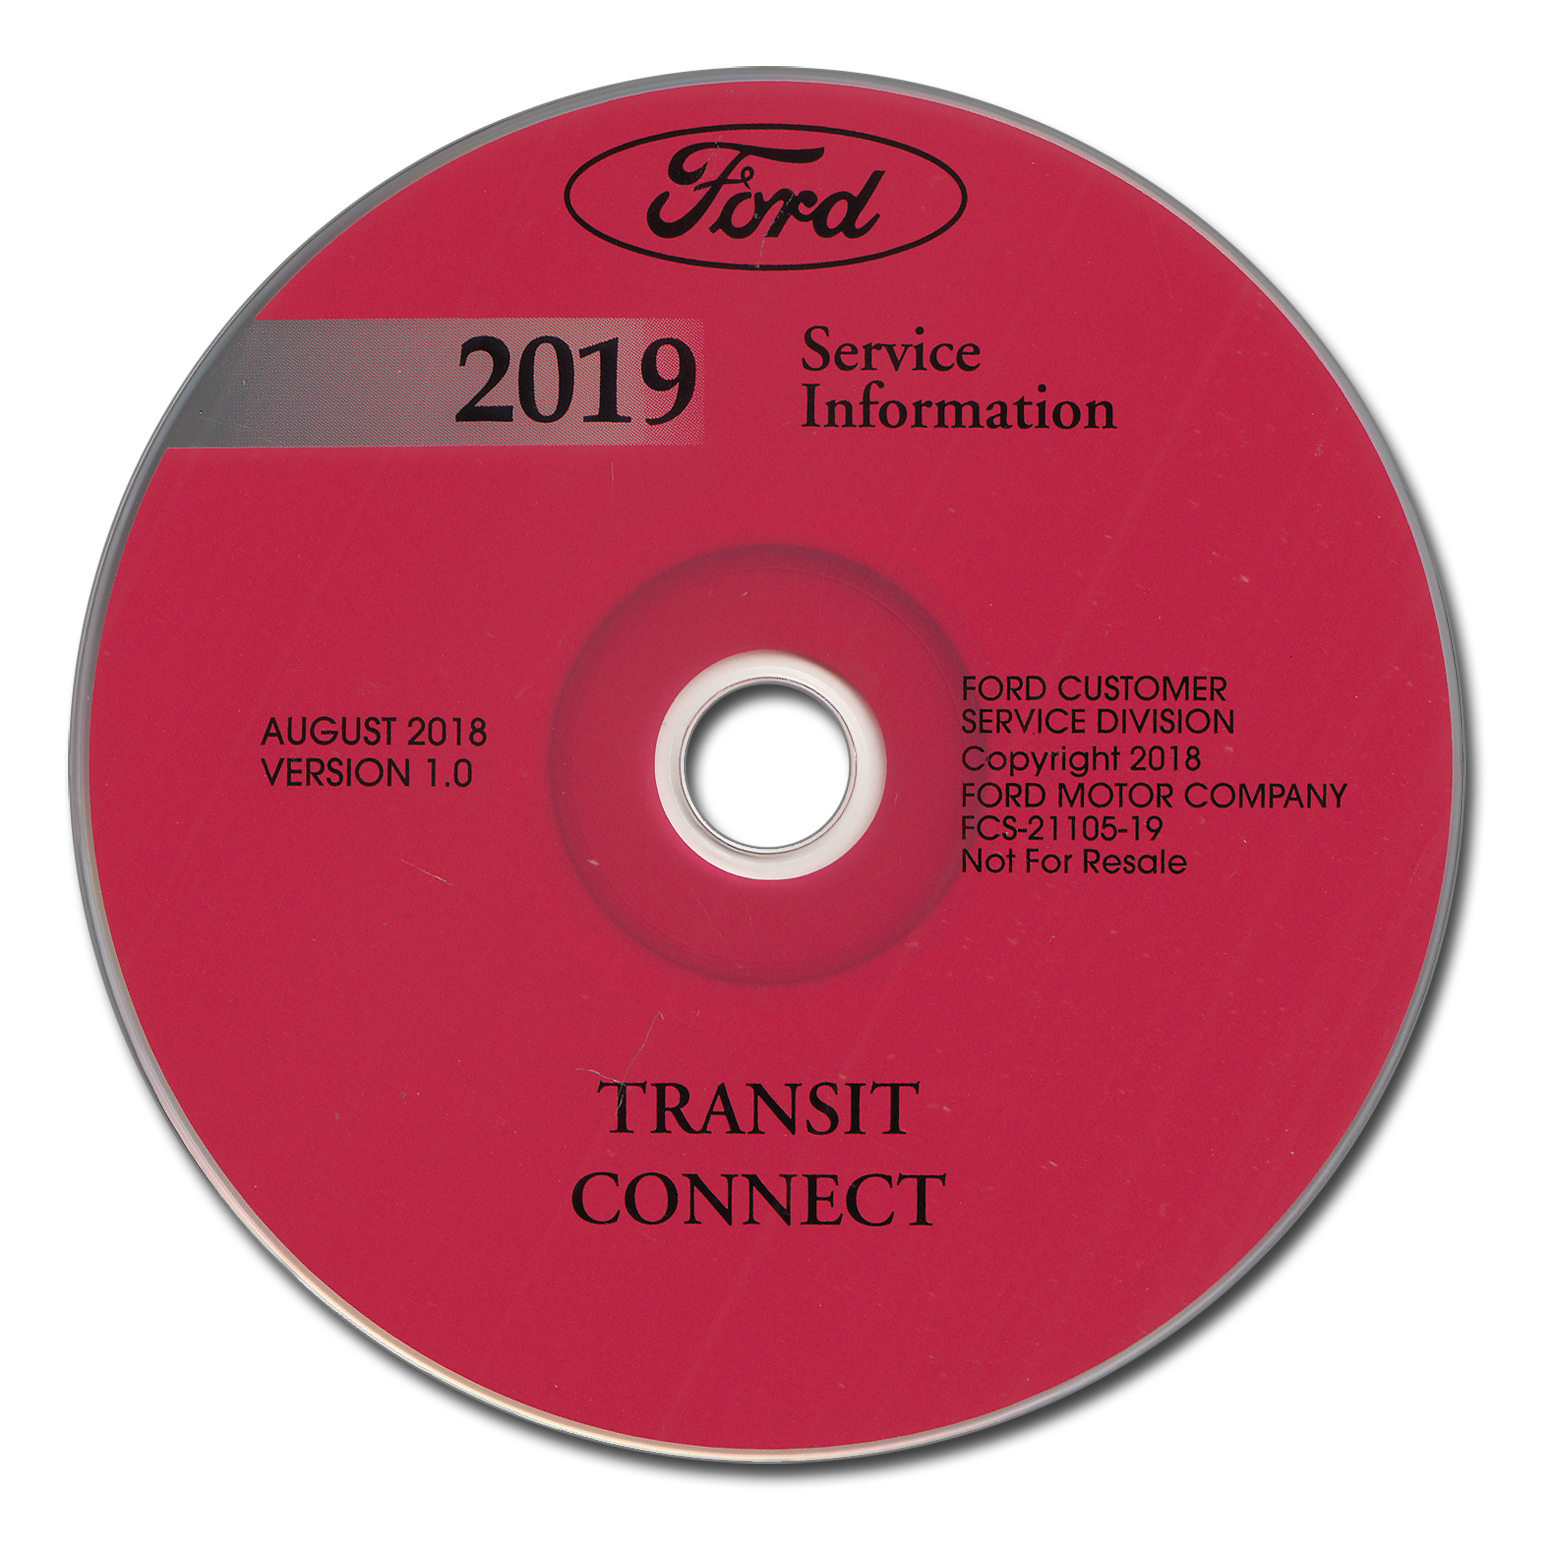 2019 Ford Transit Connect Repair Shop Manual on CD-ROM Original